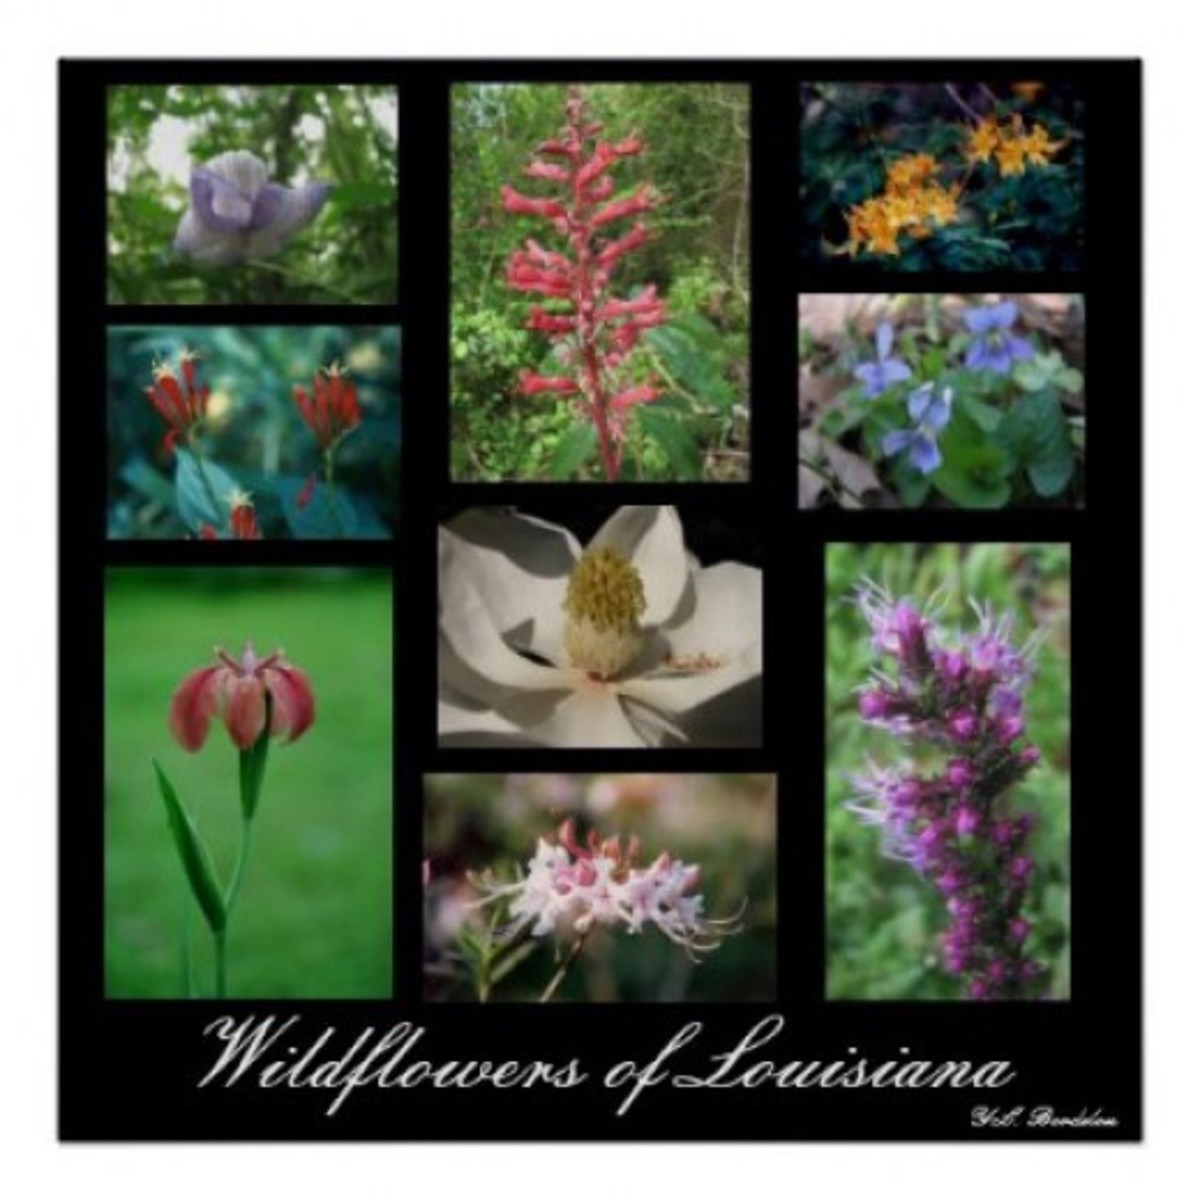 A few of the beautiful wildflowers of Louisiana.